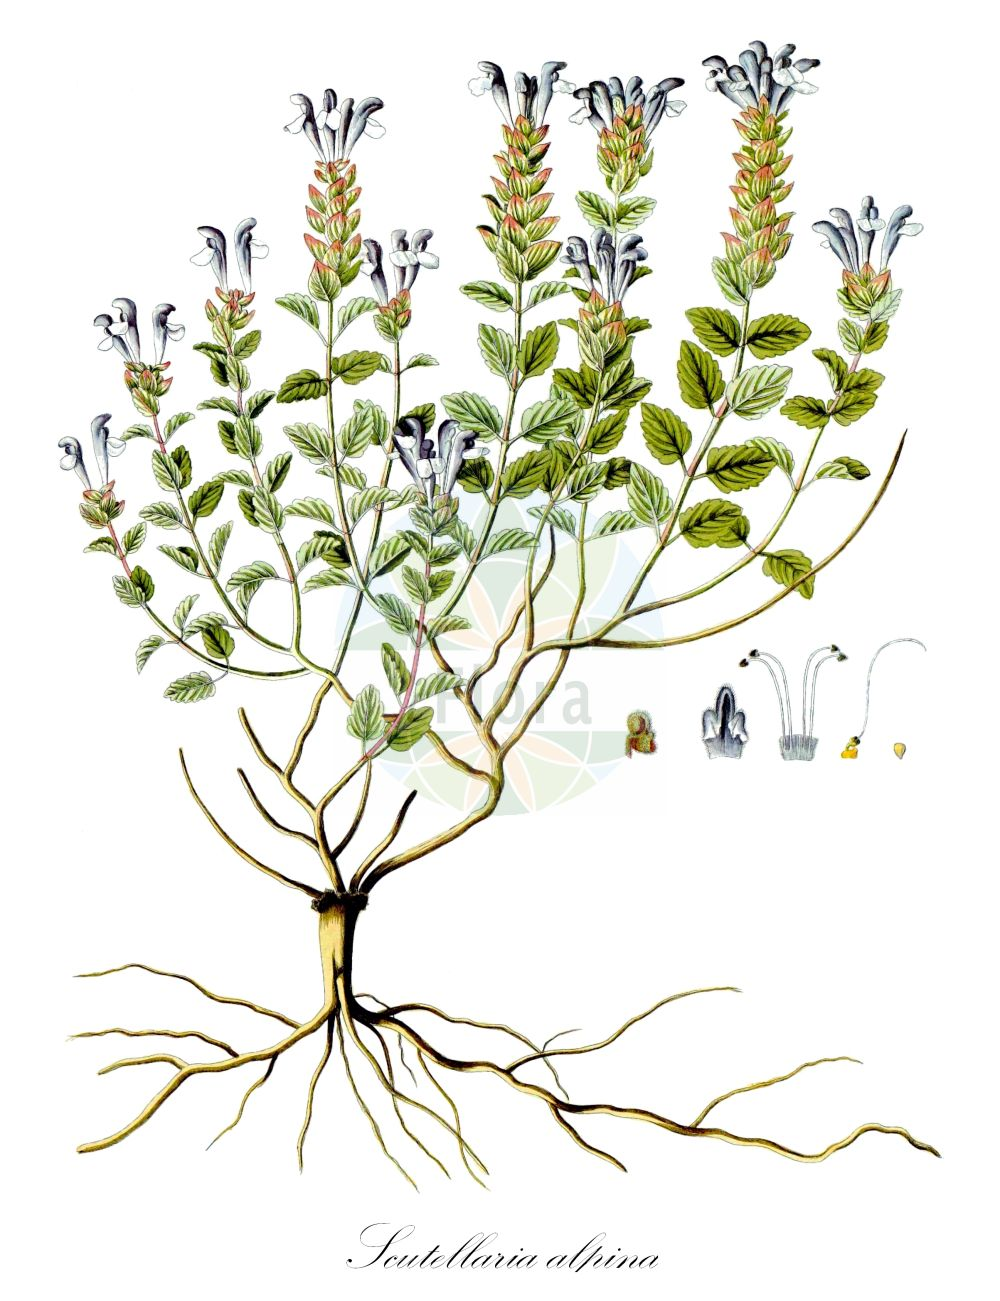 Historische Abbildung von Scutellaria alpina. Das Bild zeigt Blatt, Bluete, Frucht und Same. ---- Historical Drawing of Scutellaria alpina.The image is showing leaf, flower, fruit and seed.(Scutellaria alpina,Cassida alpina,Scutellaria compressa,Scutellaria jabalambrensis,Scutellaria lupulina,Scutellaria variegata,Scutellaria viscida,Scutellaria,Helmkraut,Skullcap,Lamiaceae,Lippenbluetengewaechse;Lippenbluetler,Nettle family,Blatt,Bluete,Frucht,Same,leaf,flower,fruit,seed,Waldstein-Wartenberg & Kitaibel (1799-1812))